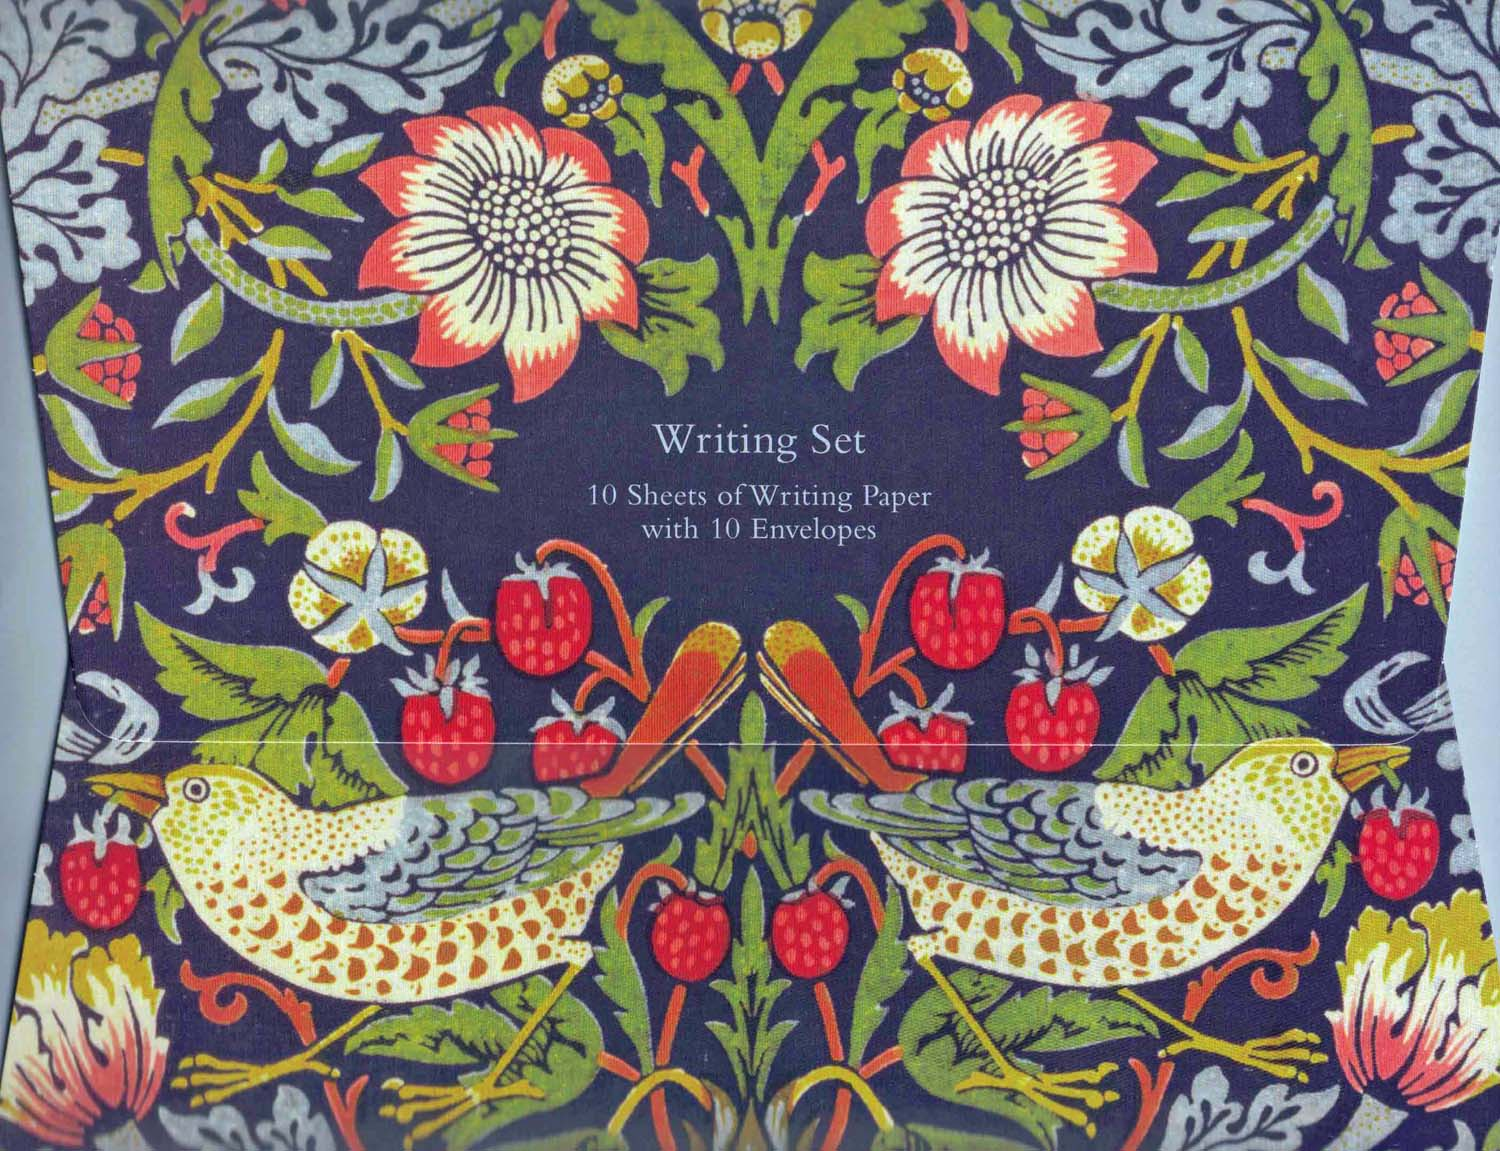 "<p>Writing set of William Morris ""Strawberry Thief"" design (1883) containing 10 sheets of high quality A5 printed writing paper with 10 envelopes encased in an attractive matt laminate folder (7 3/8"" x 9.5"").</p>"